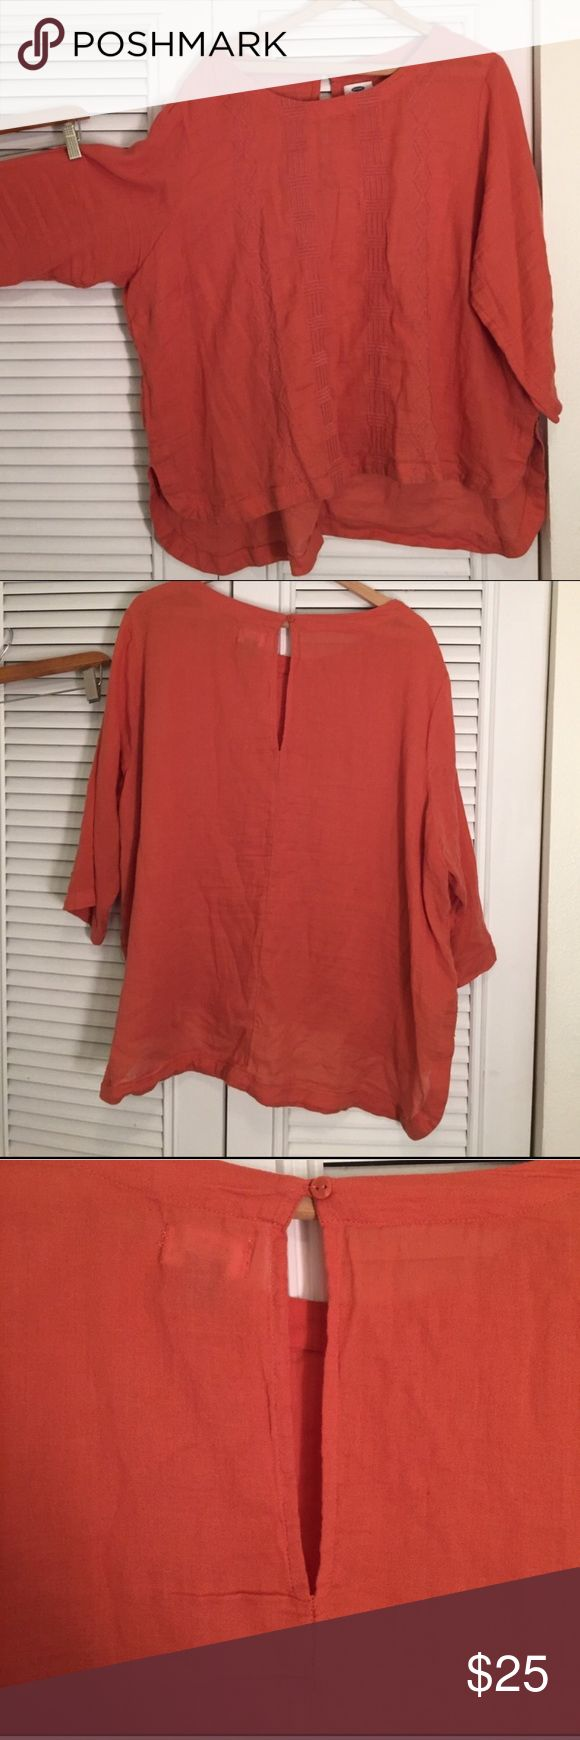 Burnt orange Blouse with Aztec design Burnt orange imprinted three-quarter length sleeve shirt shorter in front than in back, high low design with Aztec tribes embroidered designs Tops Blouses